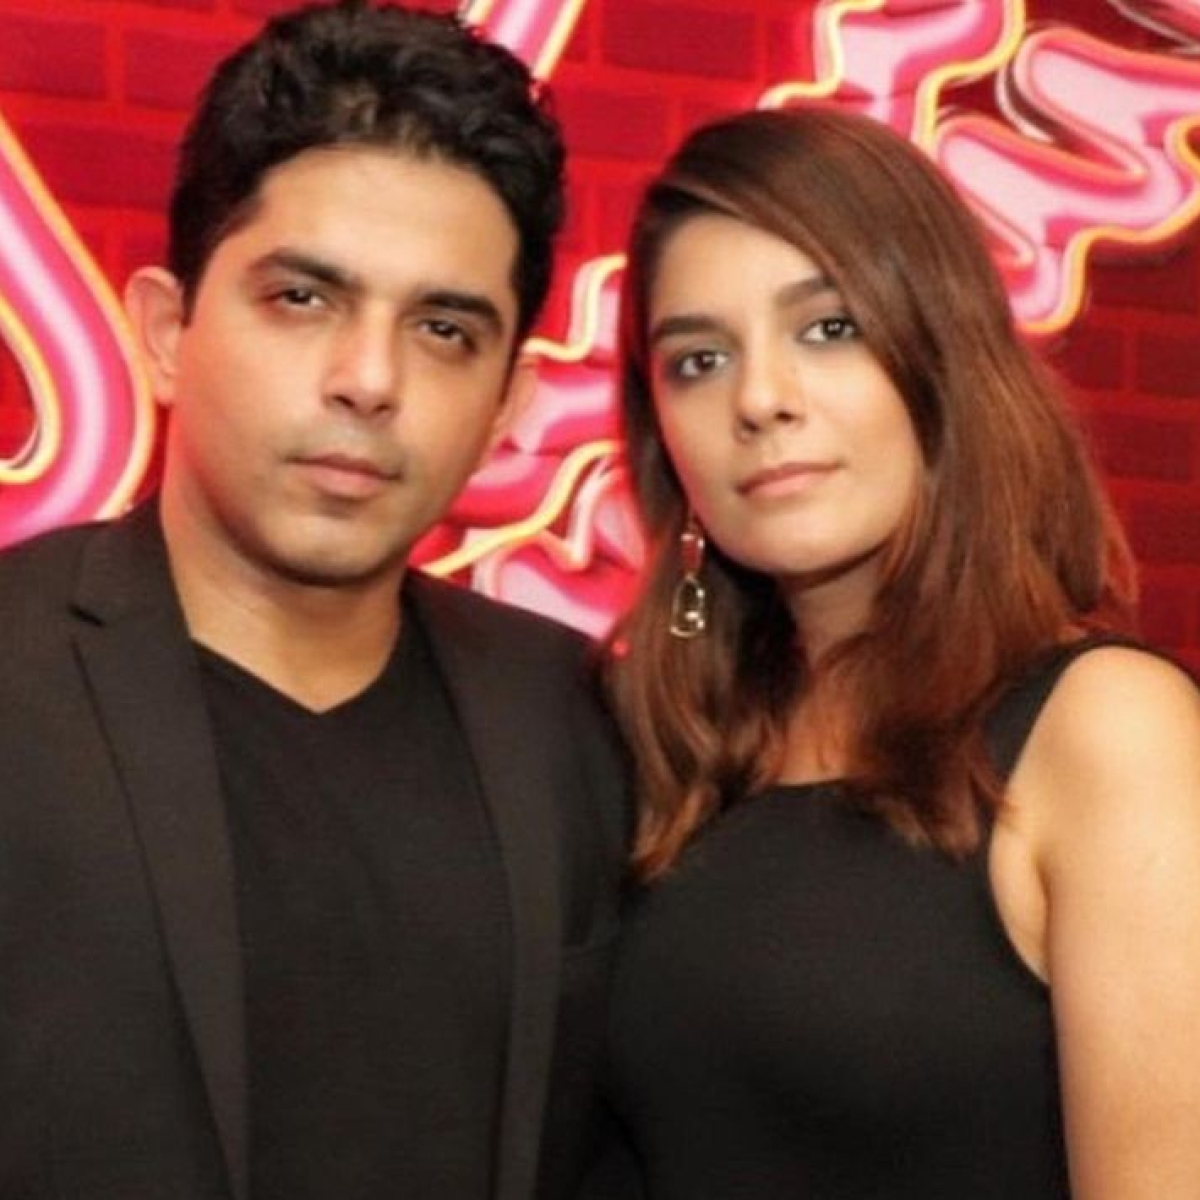 TV couple Pooja Gor and Raj Singh Arora breakup after 11 years of dating